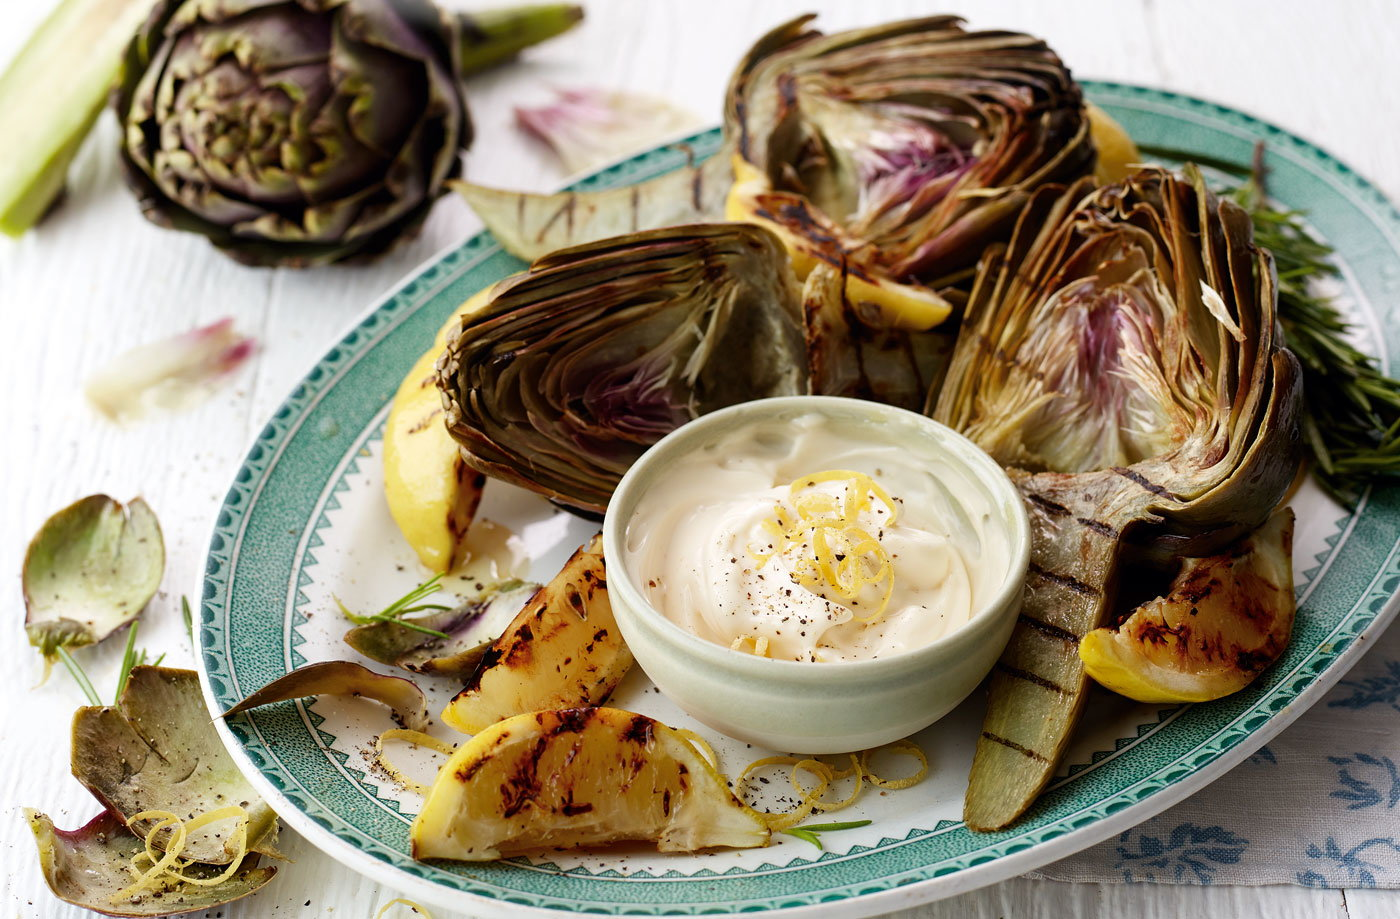 Griddled artichokes with lemon aïoli recipe